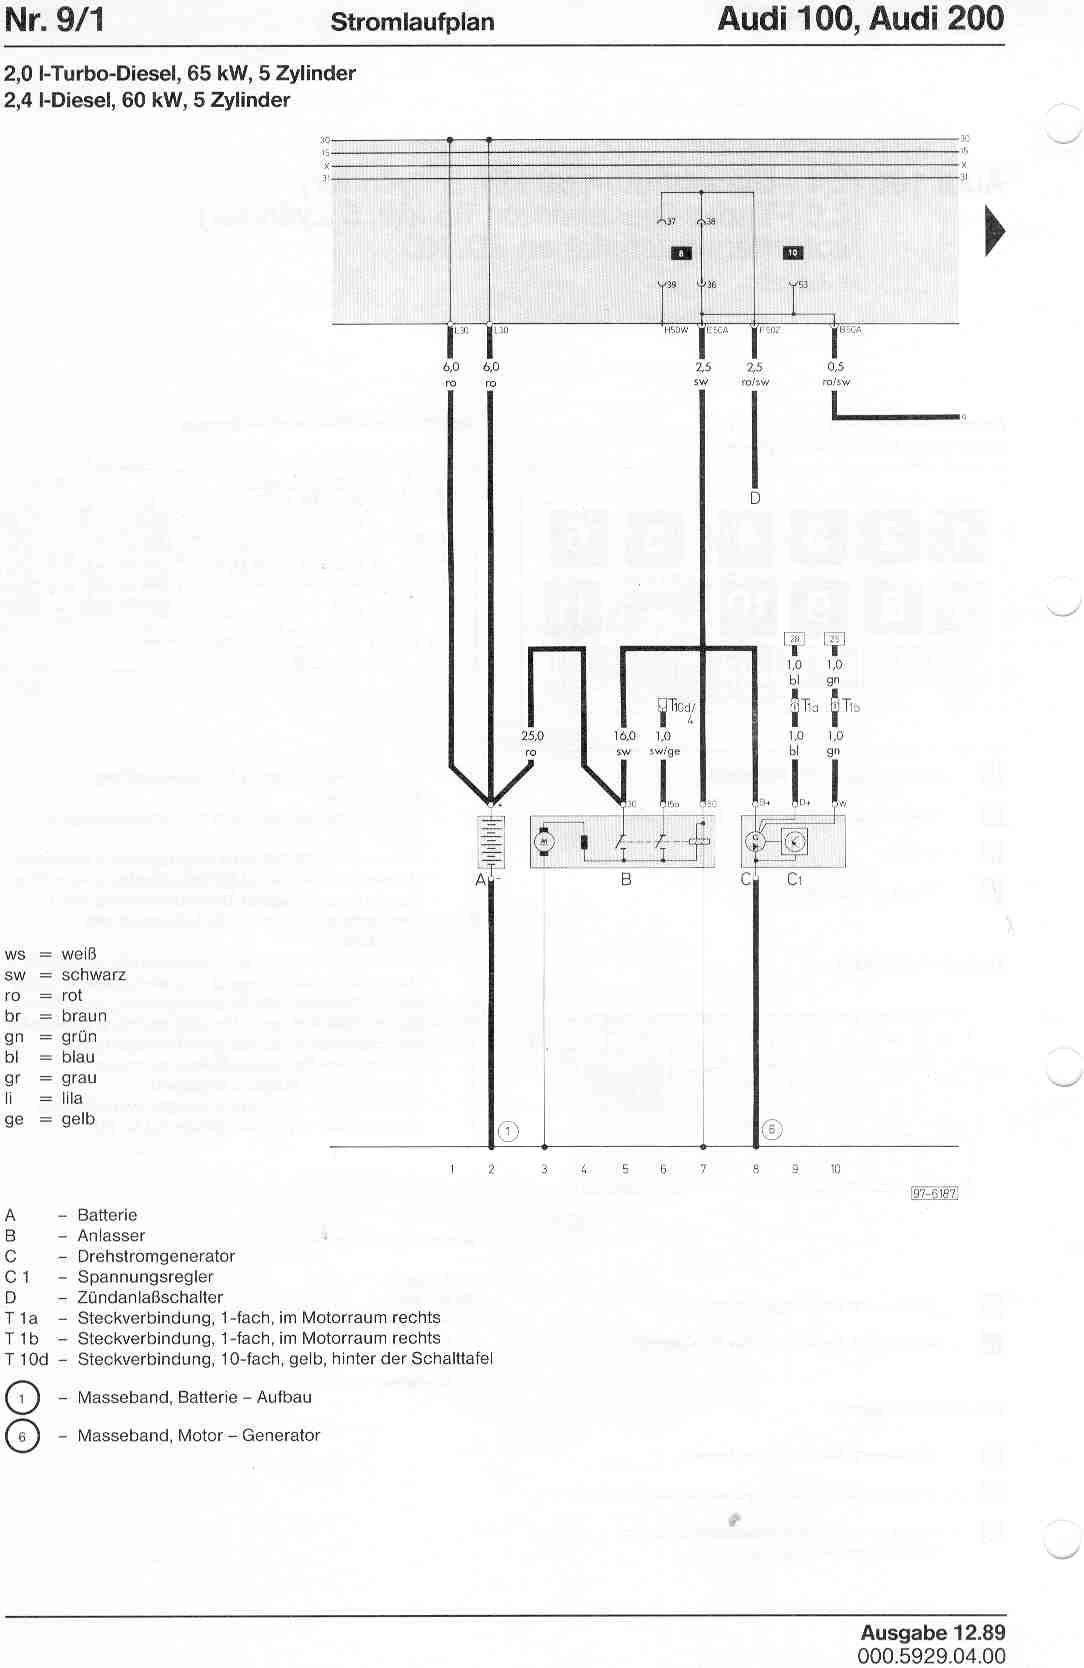 Audi 200 Wiring Diagram Electrical For A6 100 Factory Diagrams 2006 Fuse